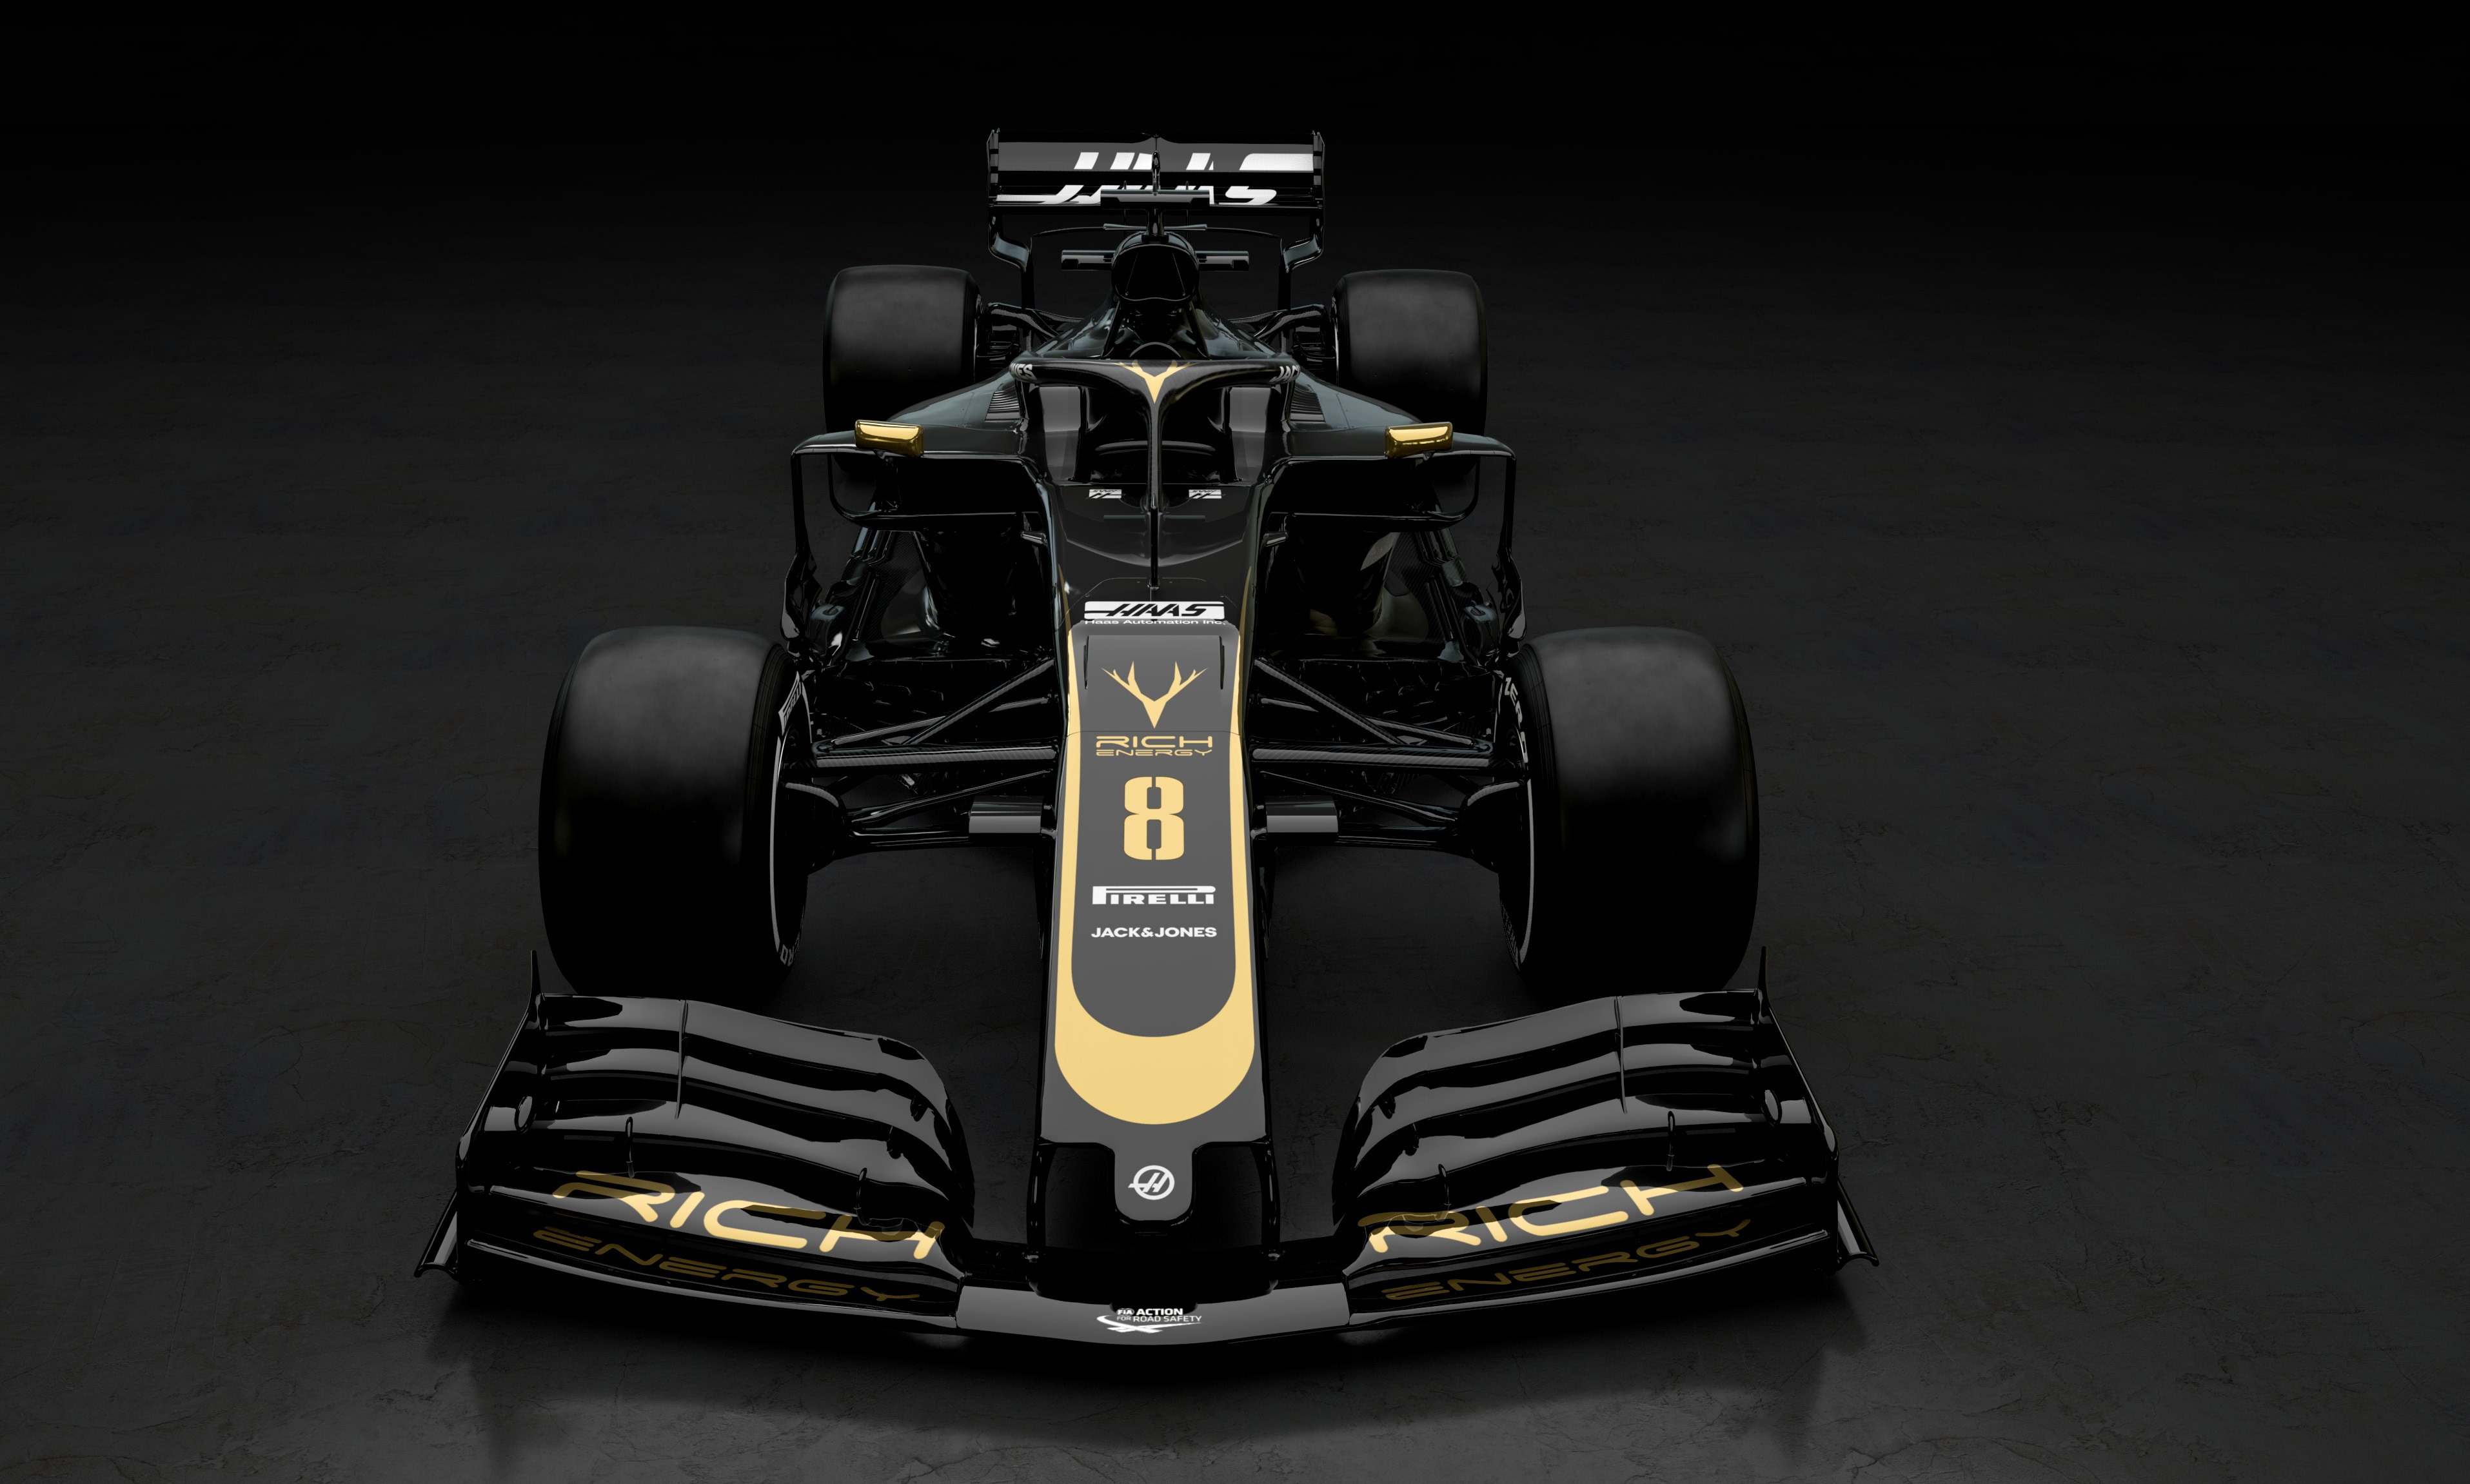 F1 2019 RICH ENERGY HAAS F1 TEAM VF19 - front-face / face avant